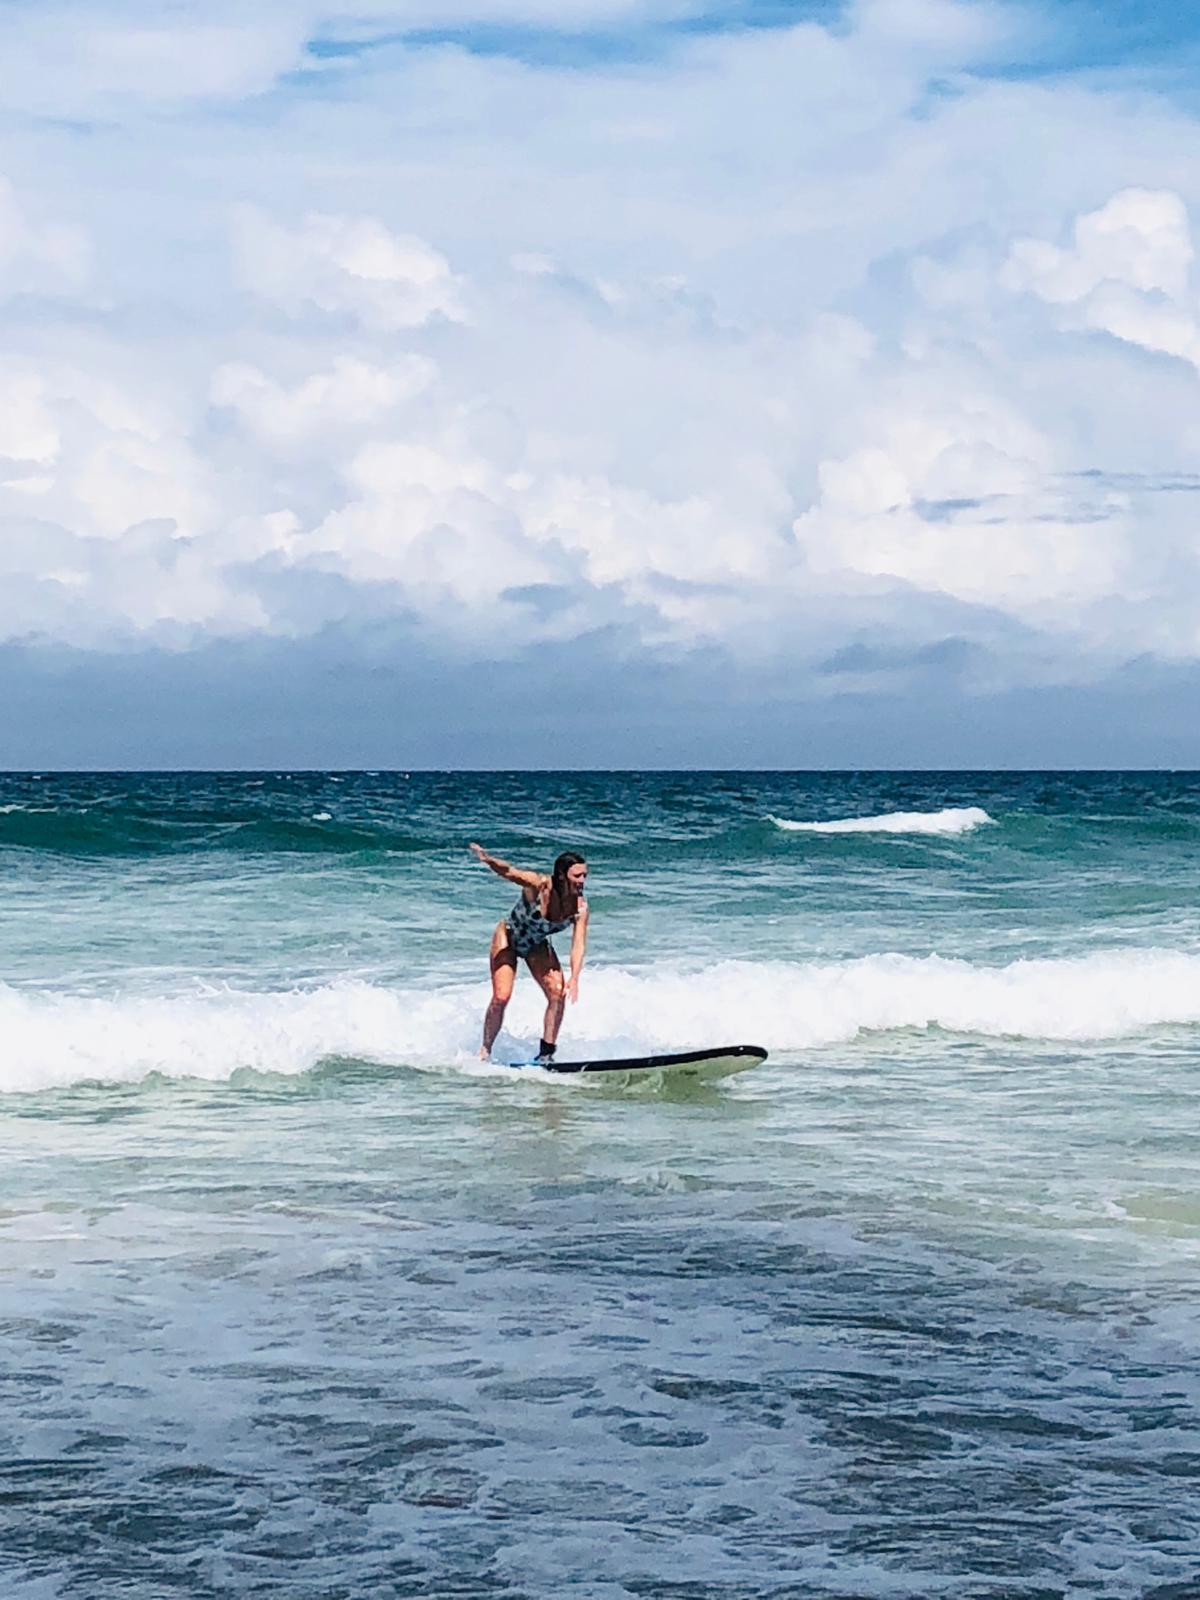 surfing for begginers and surfing lessons in the amazing byron bay surfing beaches